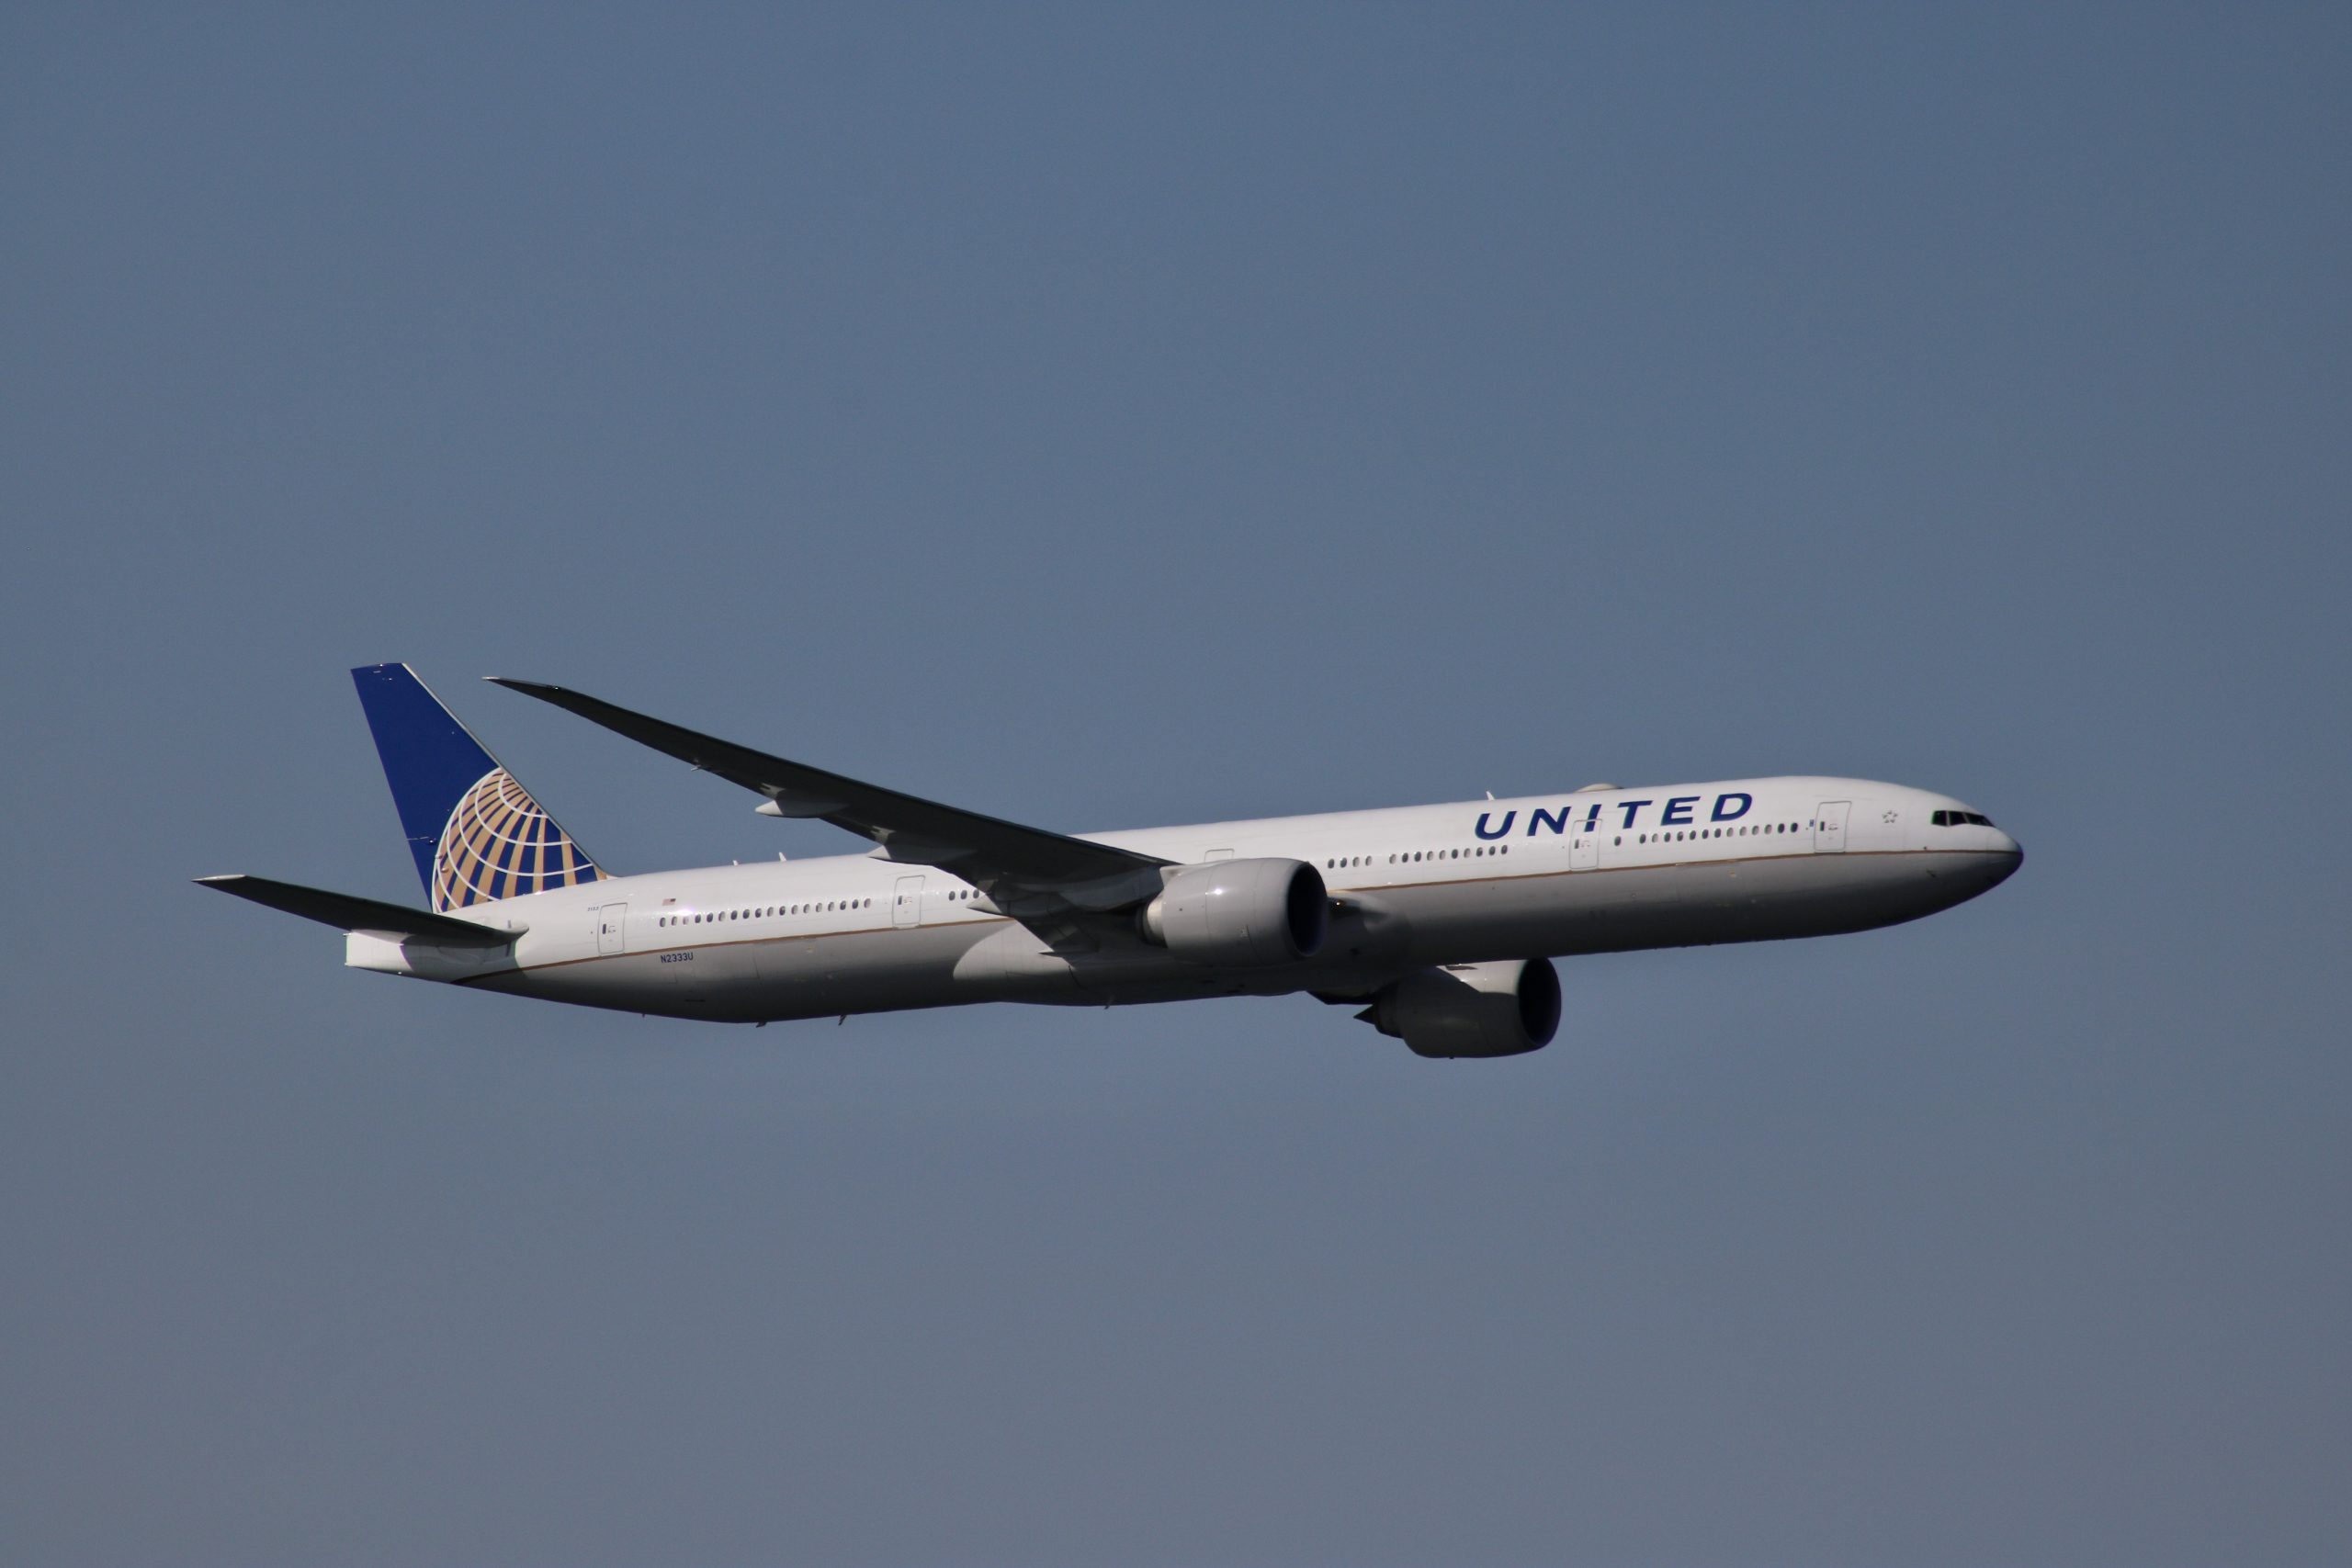 United Airlines Announces Eight New Routes And Increases Flights To 19 Destinations In The Caribbean Central America And Mexico For Winter Sun Seekers Travel Market